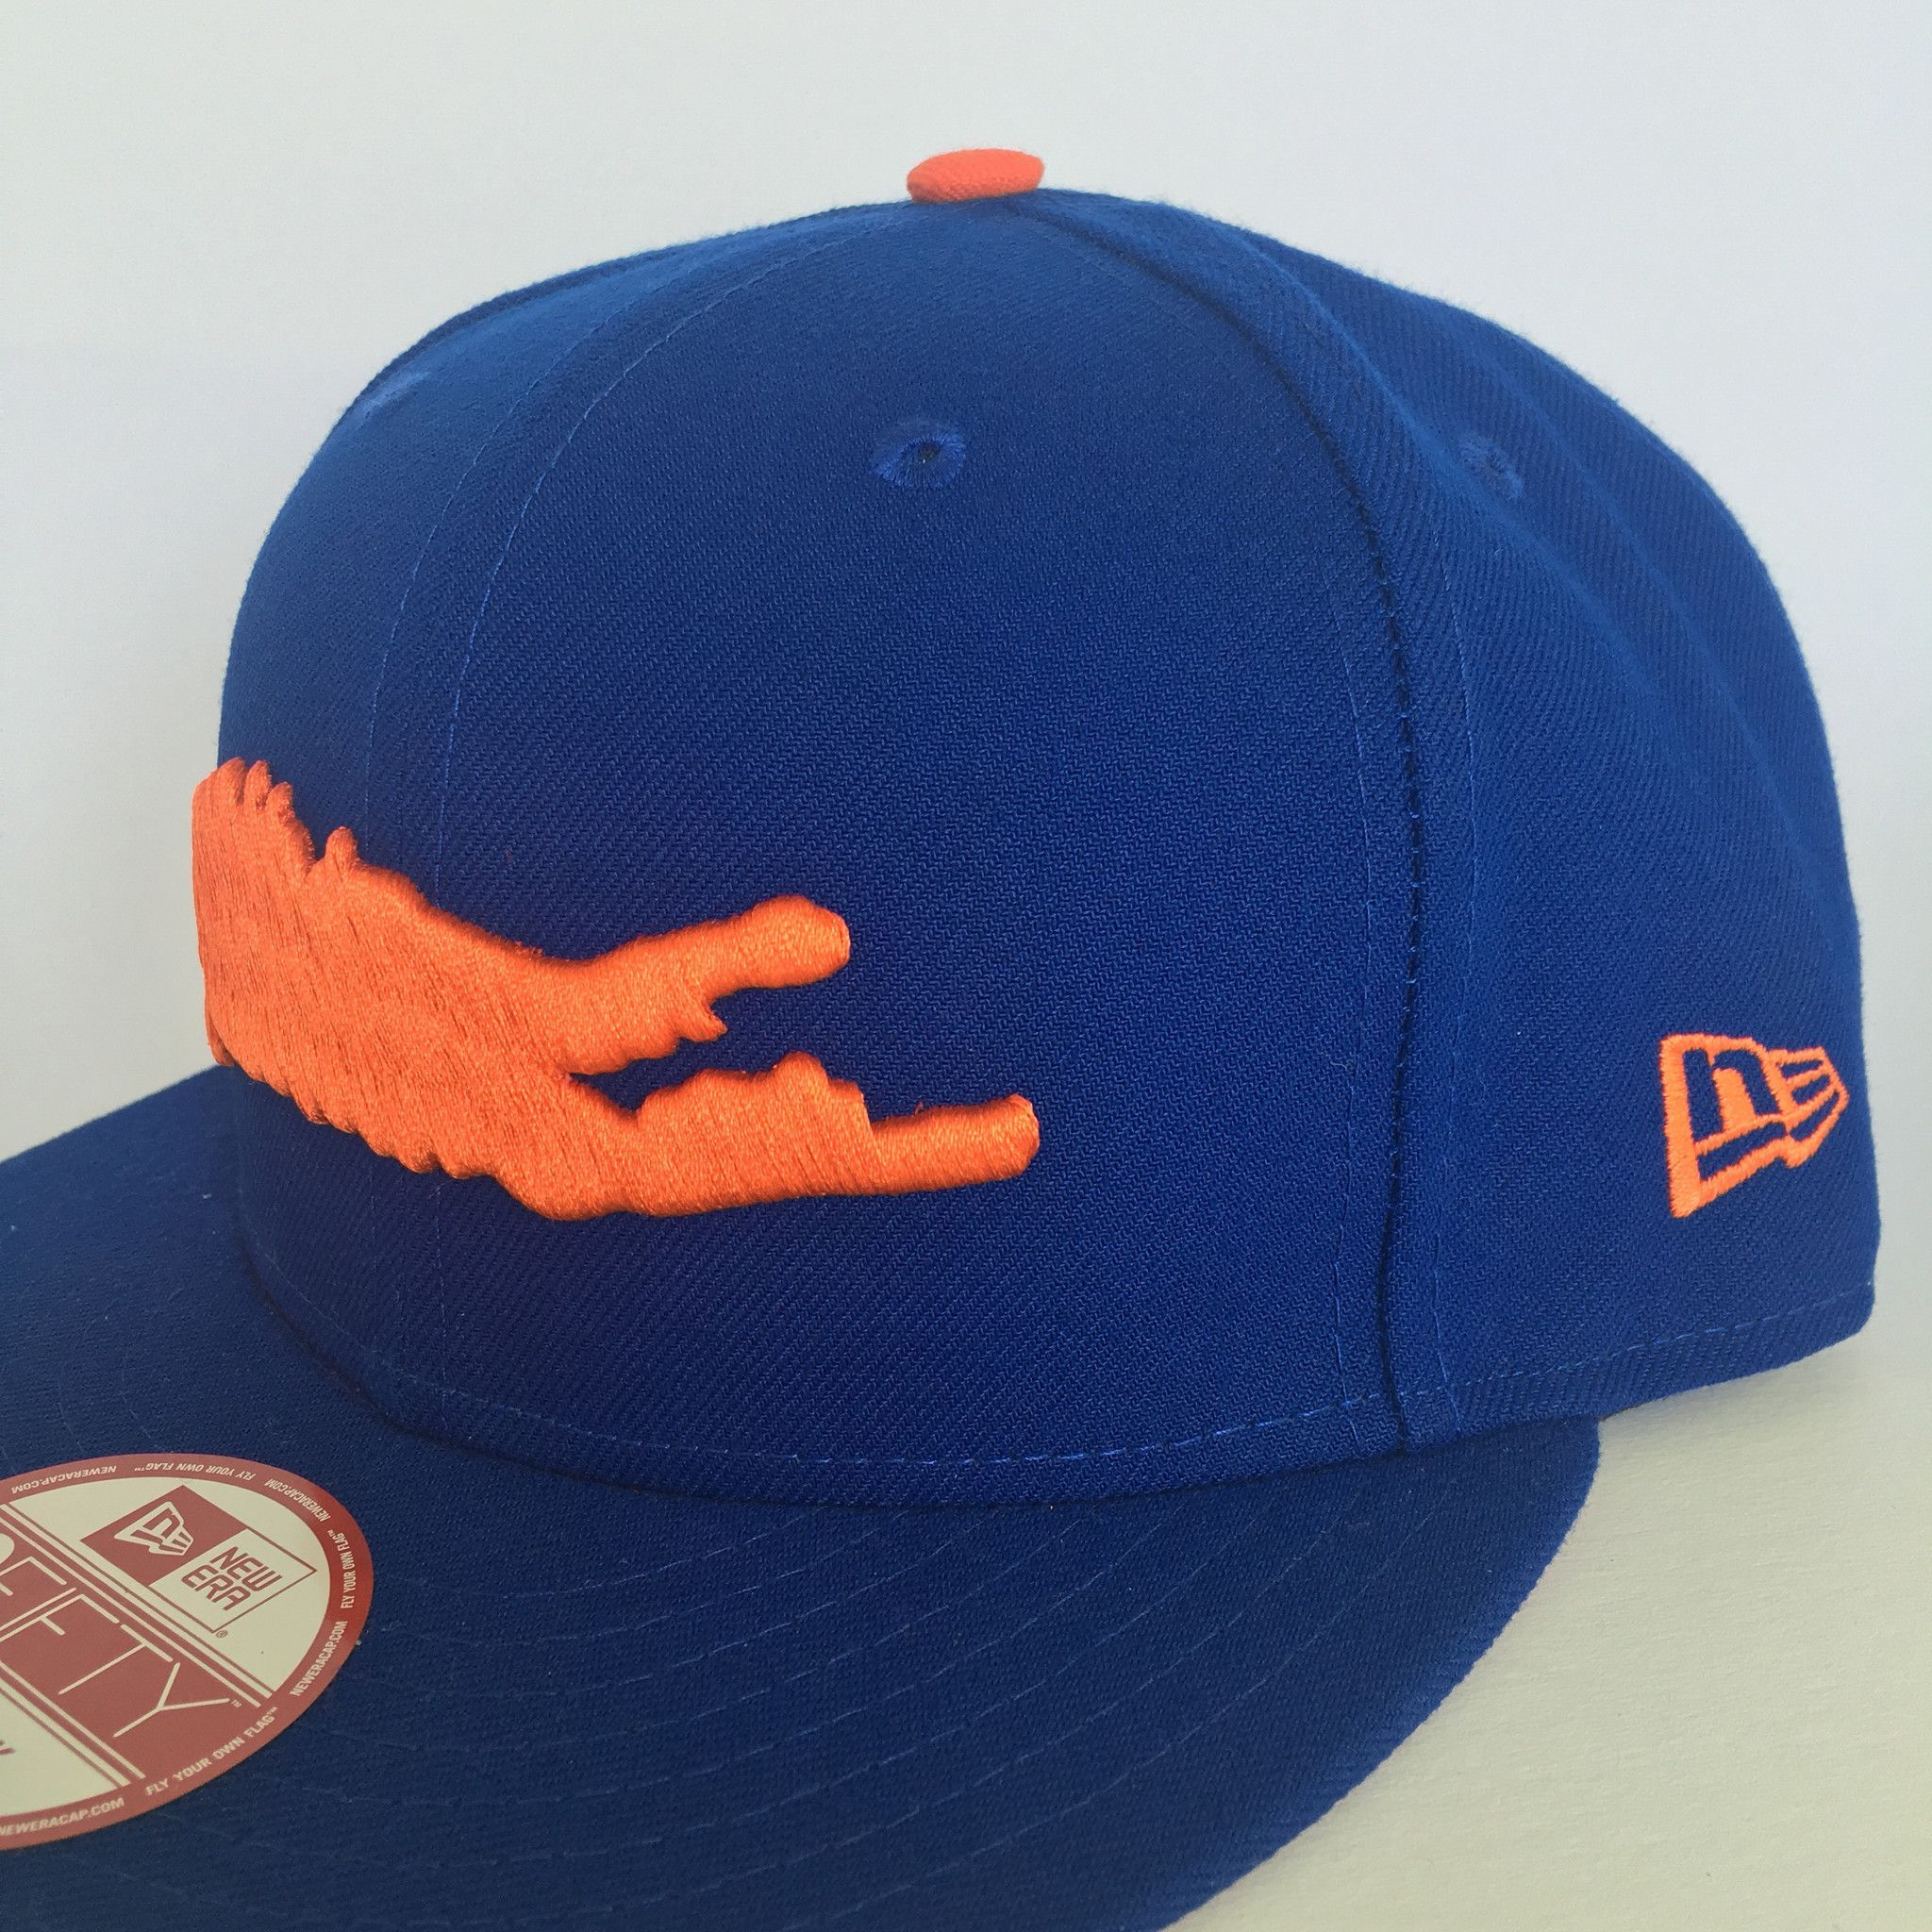 f532168276ac9c The Royal Blue and Orange Official Long Island New Era 9FIFTY snapback  features a pop out